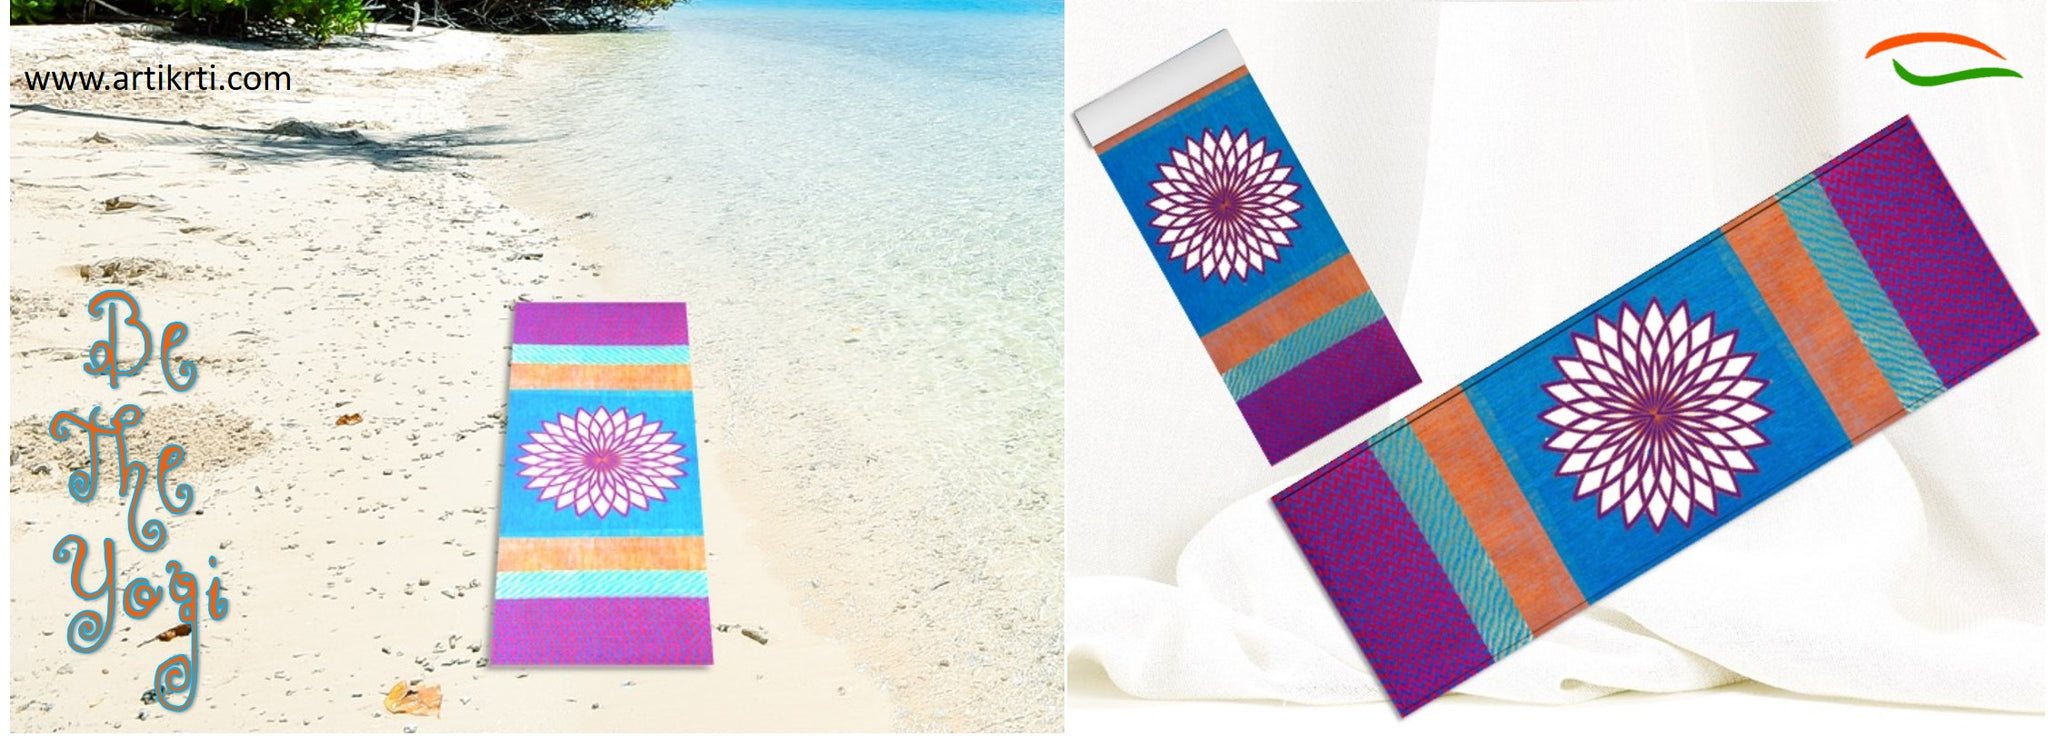 indian-yoga-mats-mandalas-design-blue-orange-purple-artikrti